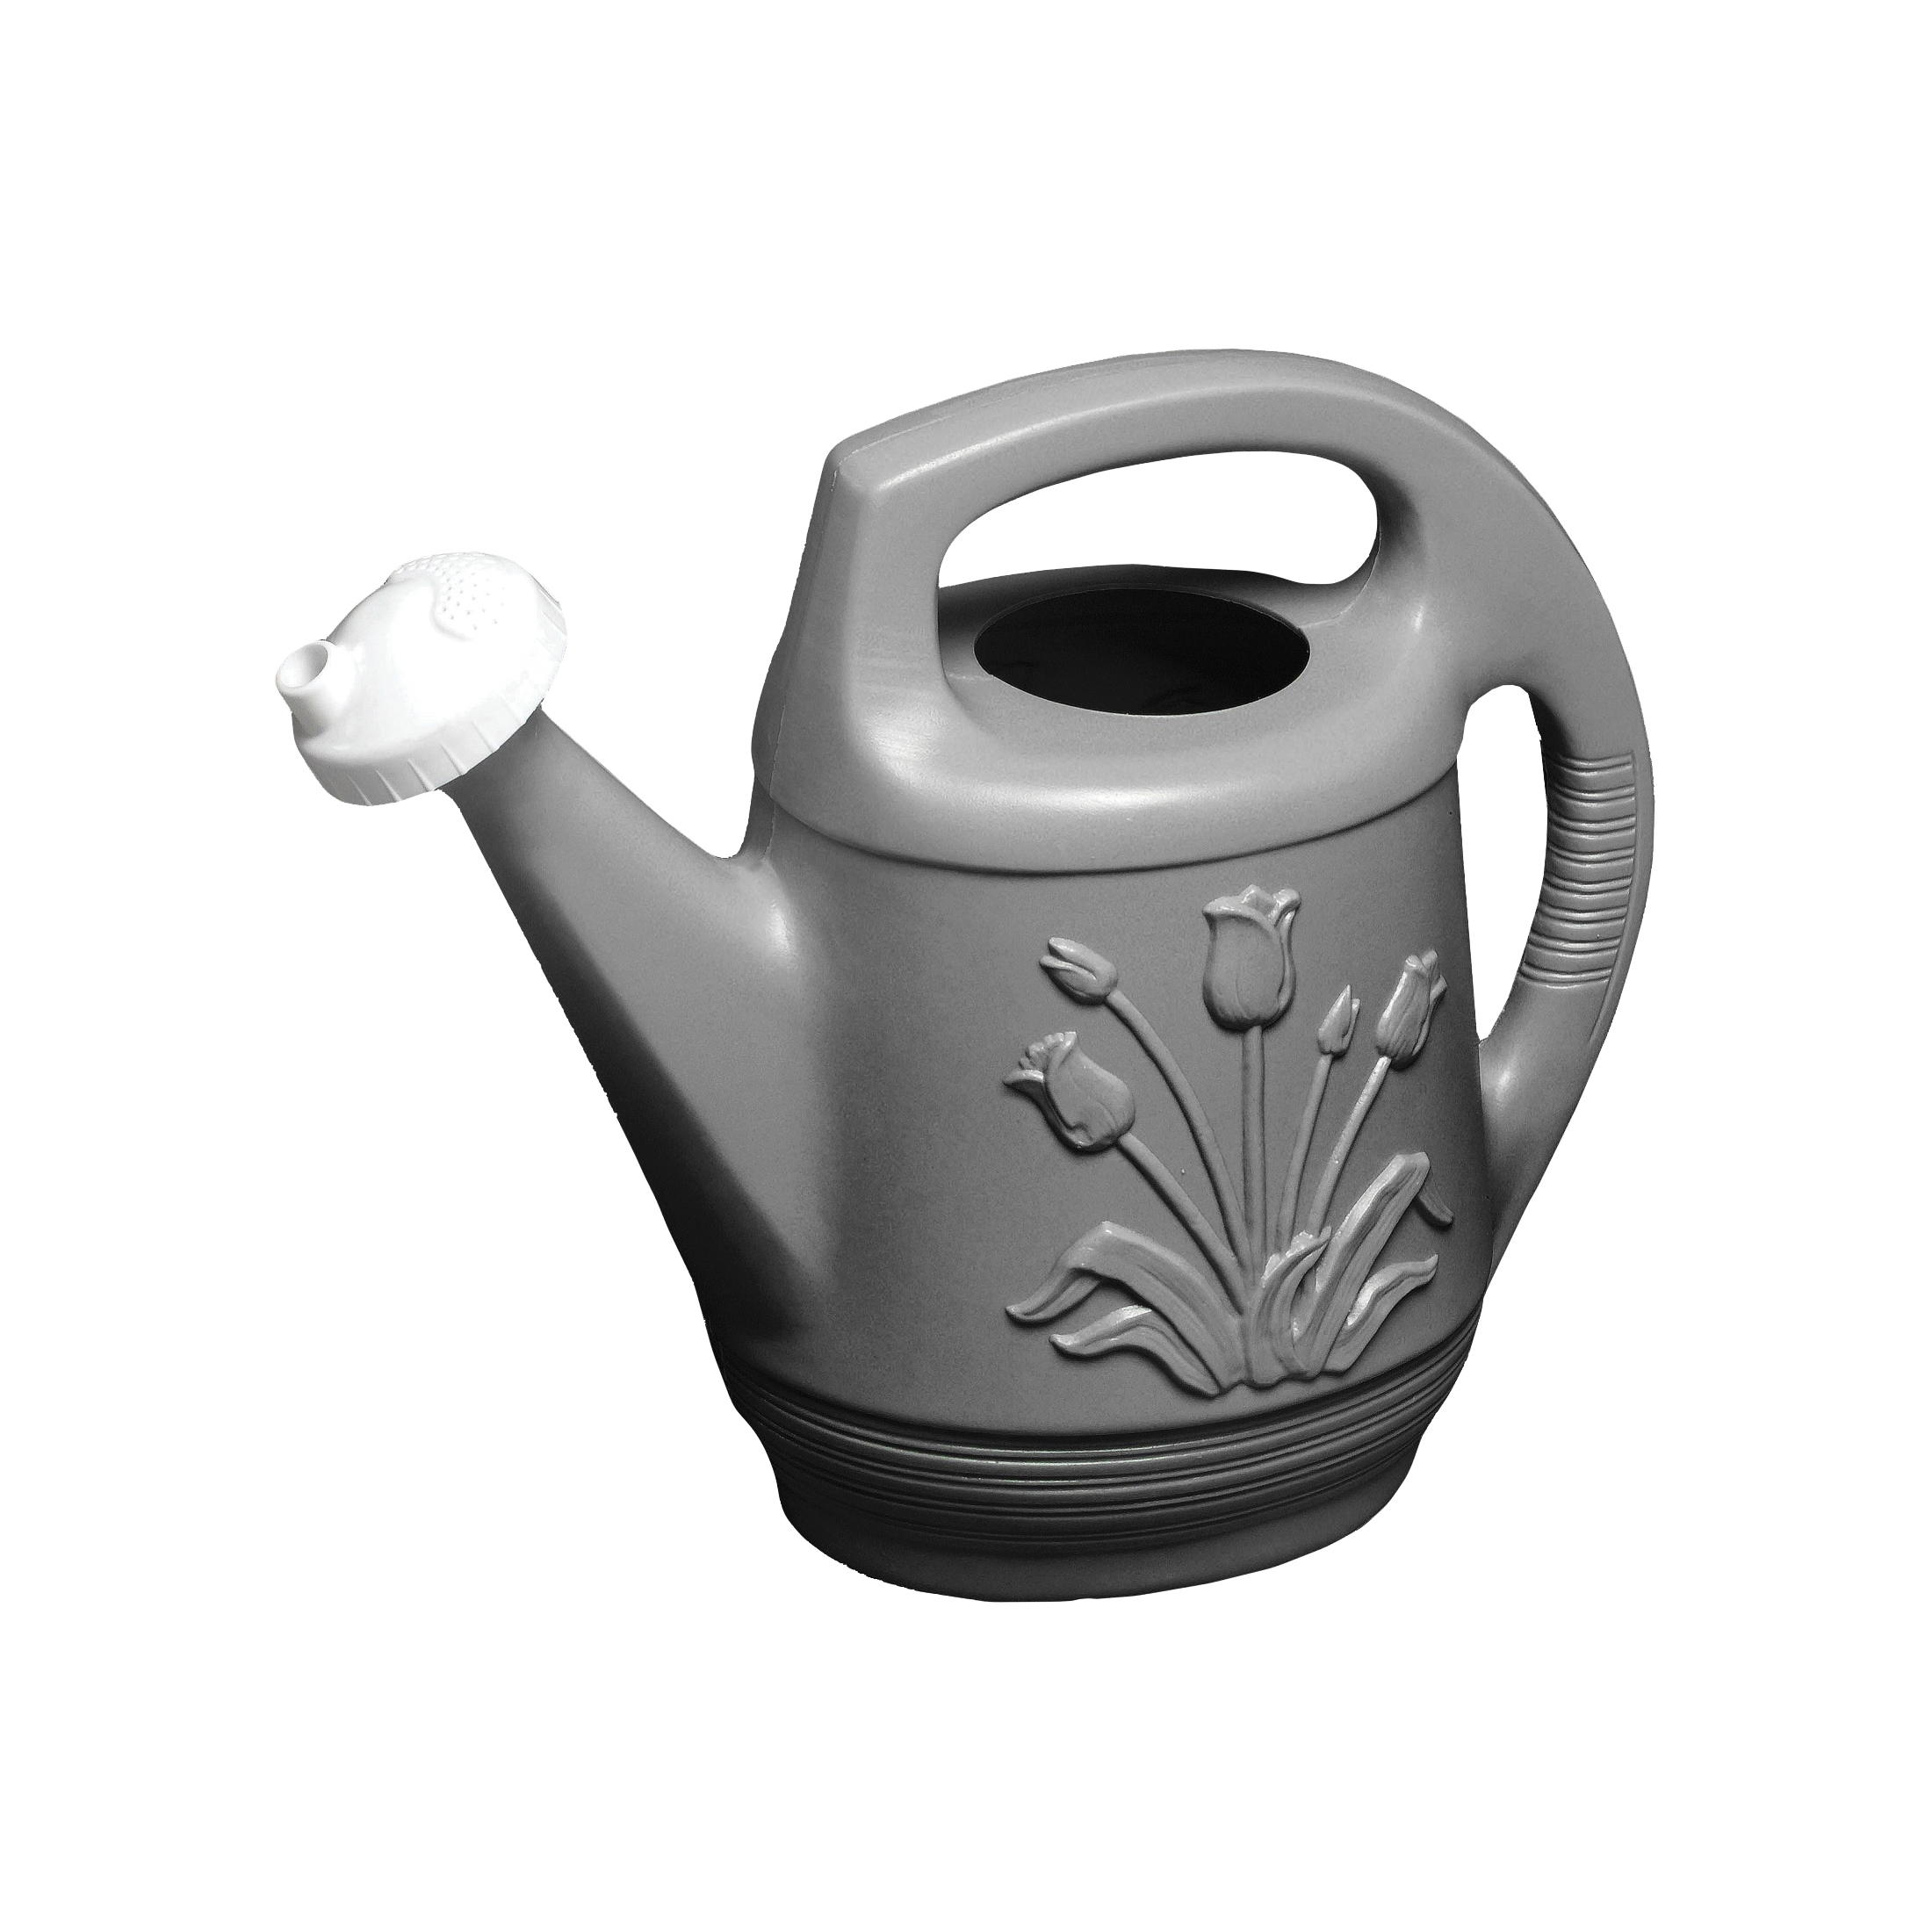 Picture of Bloem T6213-60 Watering Can, 2 gal Can, Polypropylene, Peppercorn